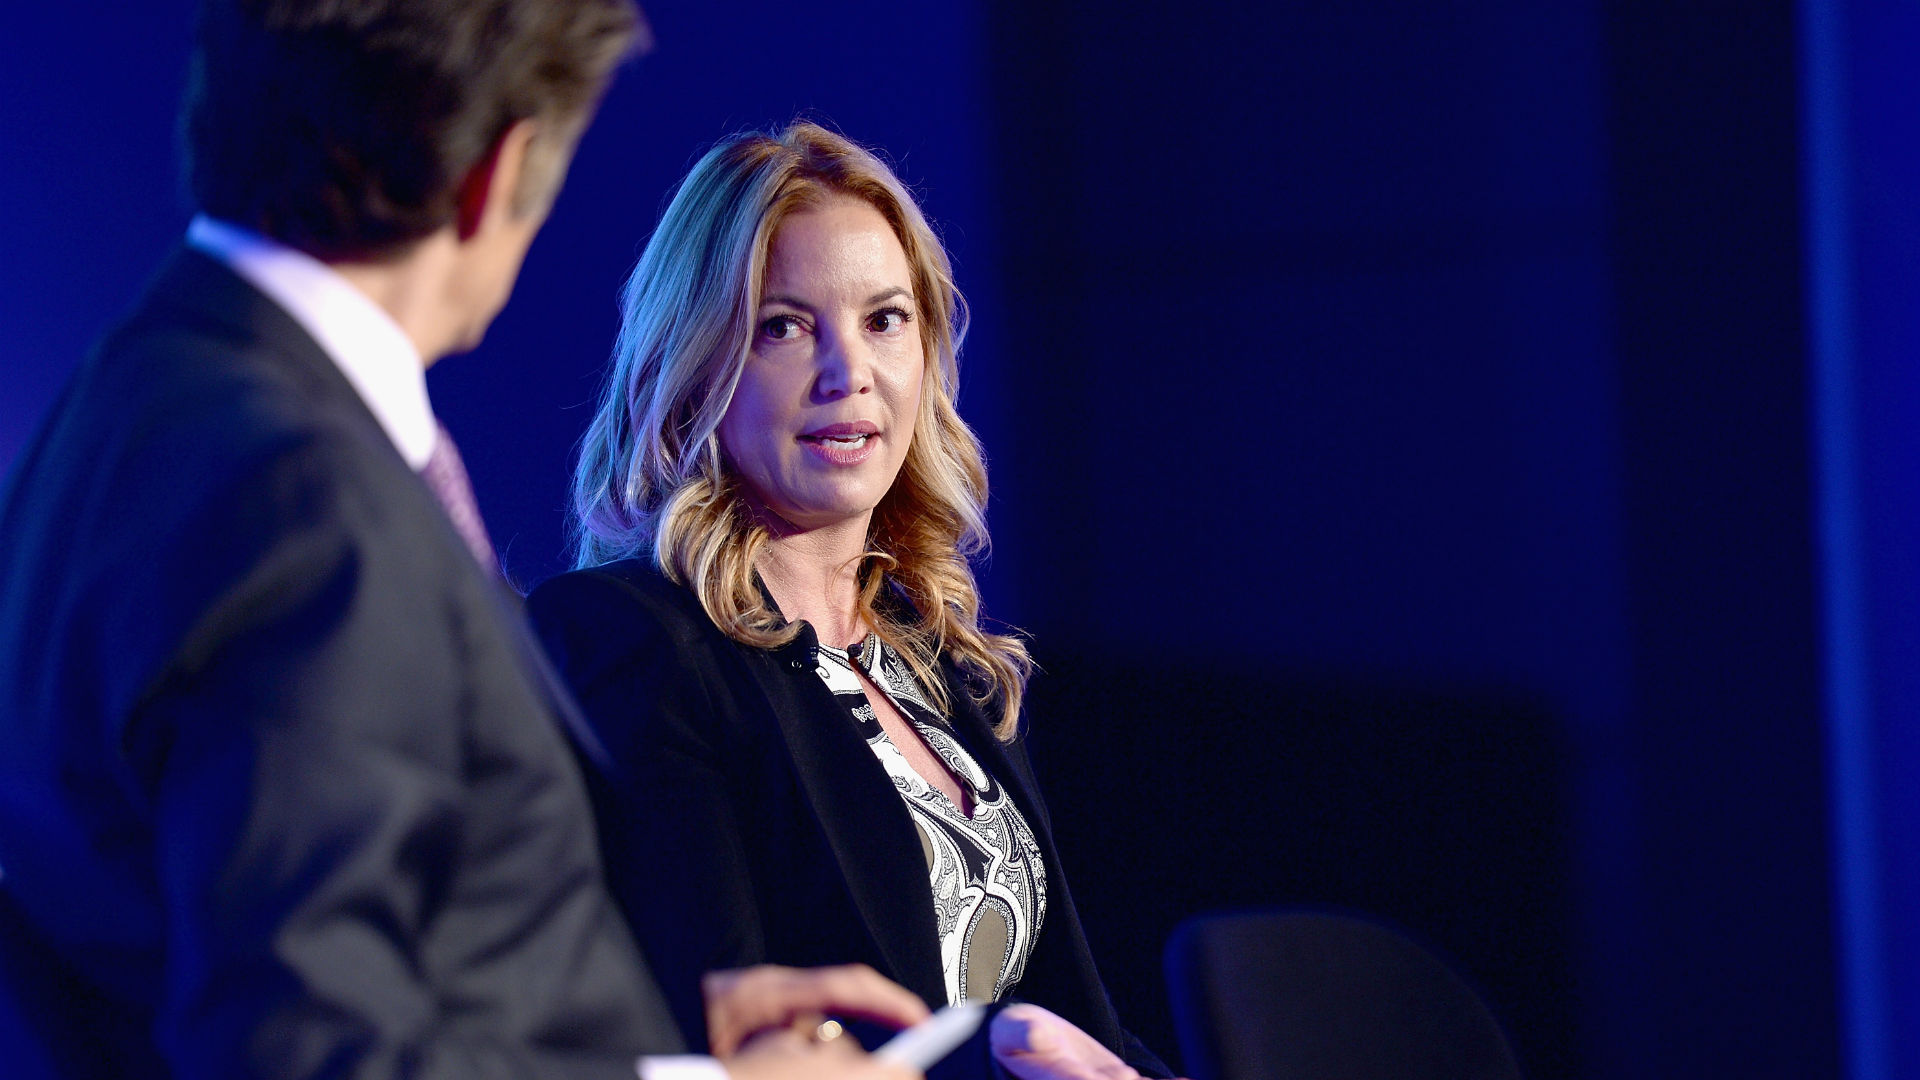 Photo of Lakers owner Jeanie Buss shares vile racist letter addressed to her